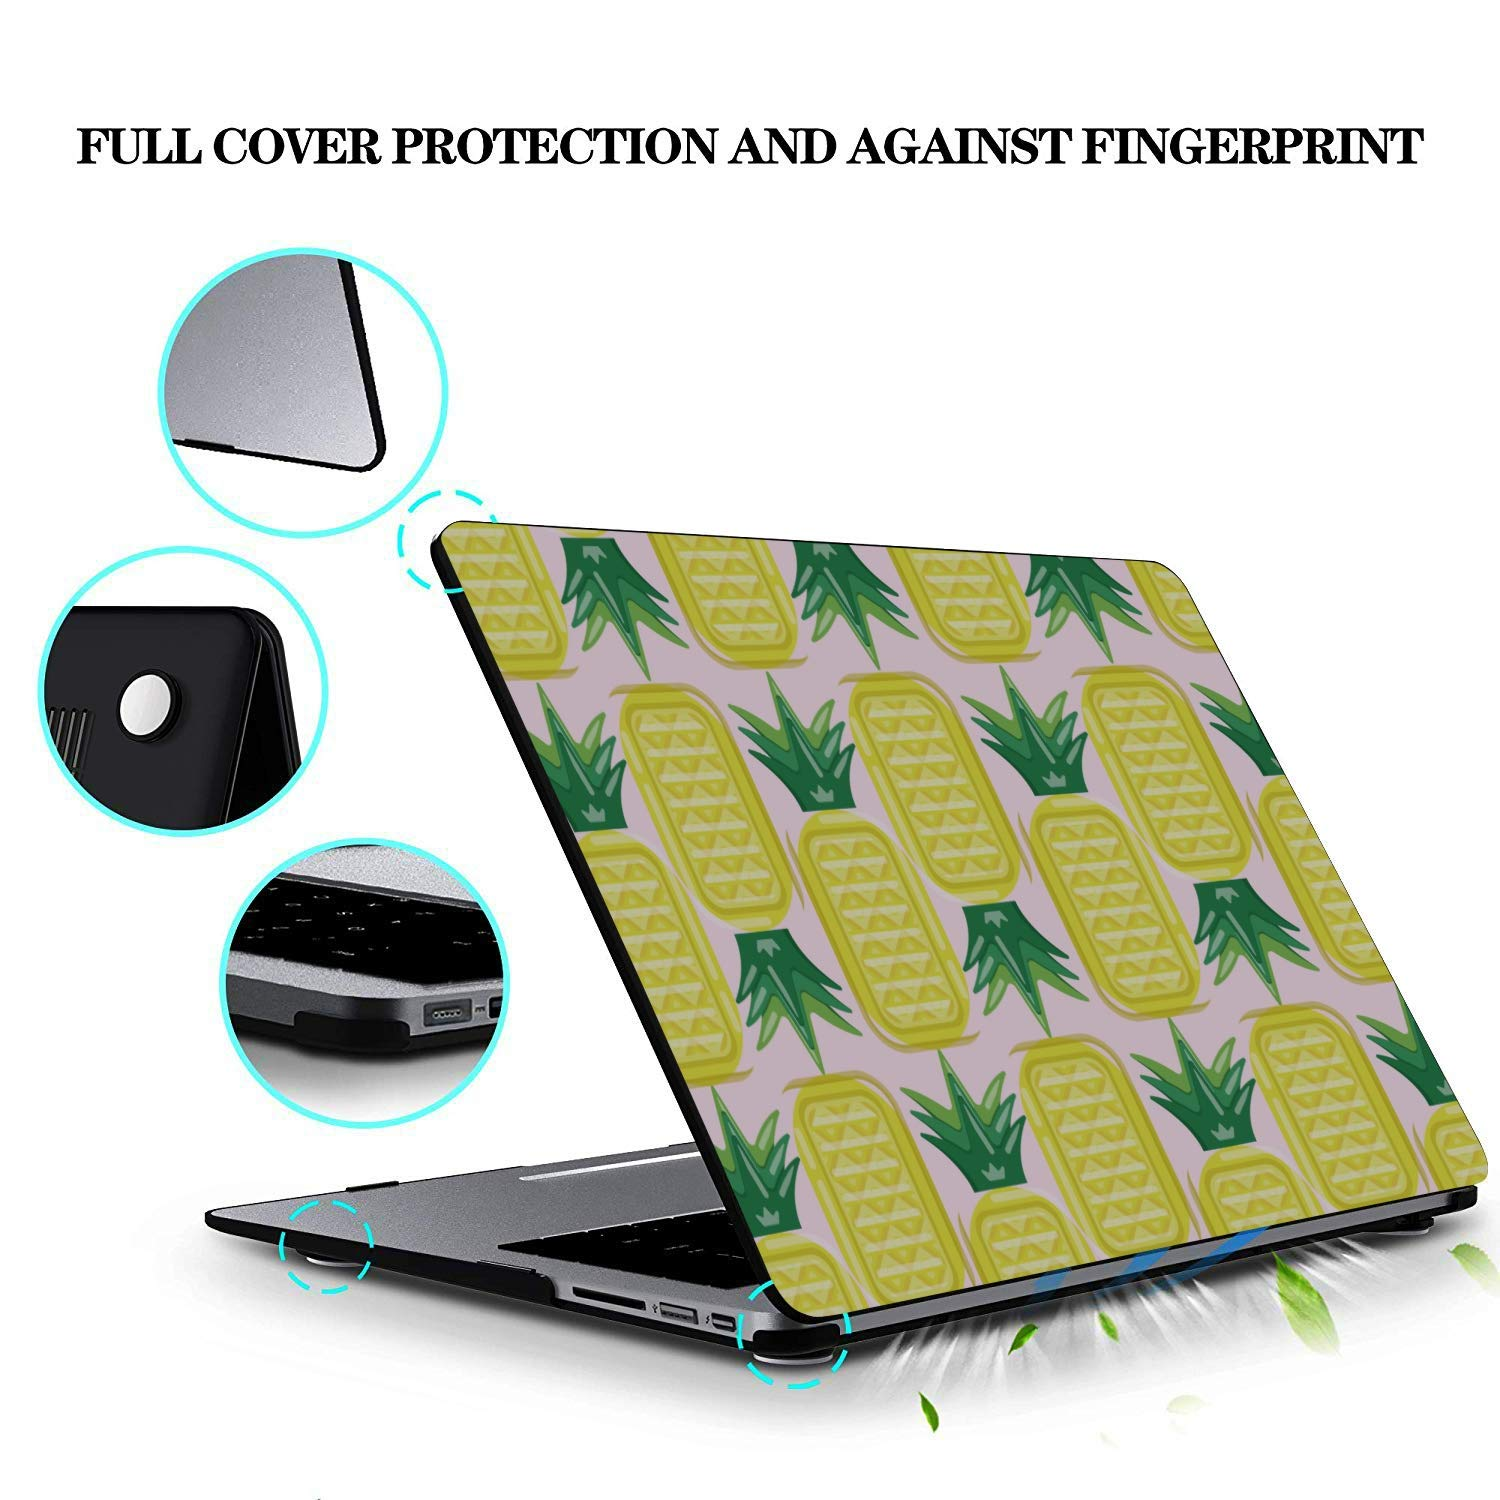 MacBook Air Laptop Case Summer Romantic Fruit Cute Pineapple Plastic Hard Shell Compatible Mac Air 11 Pro 13 15 Accessories for MacBook Pro Protection for MacBook 2016-2019 Version